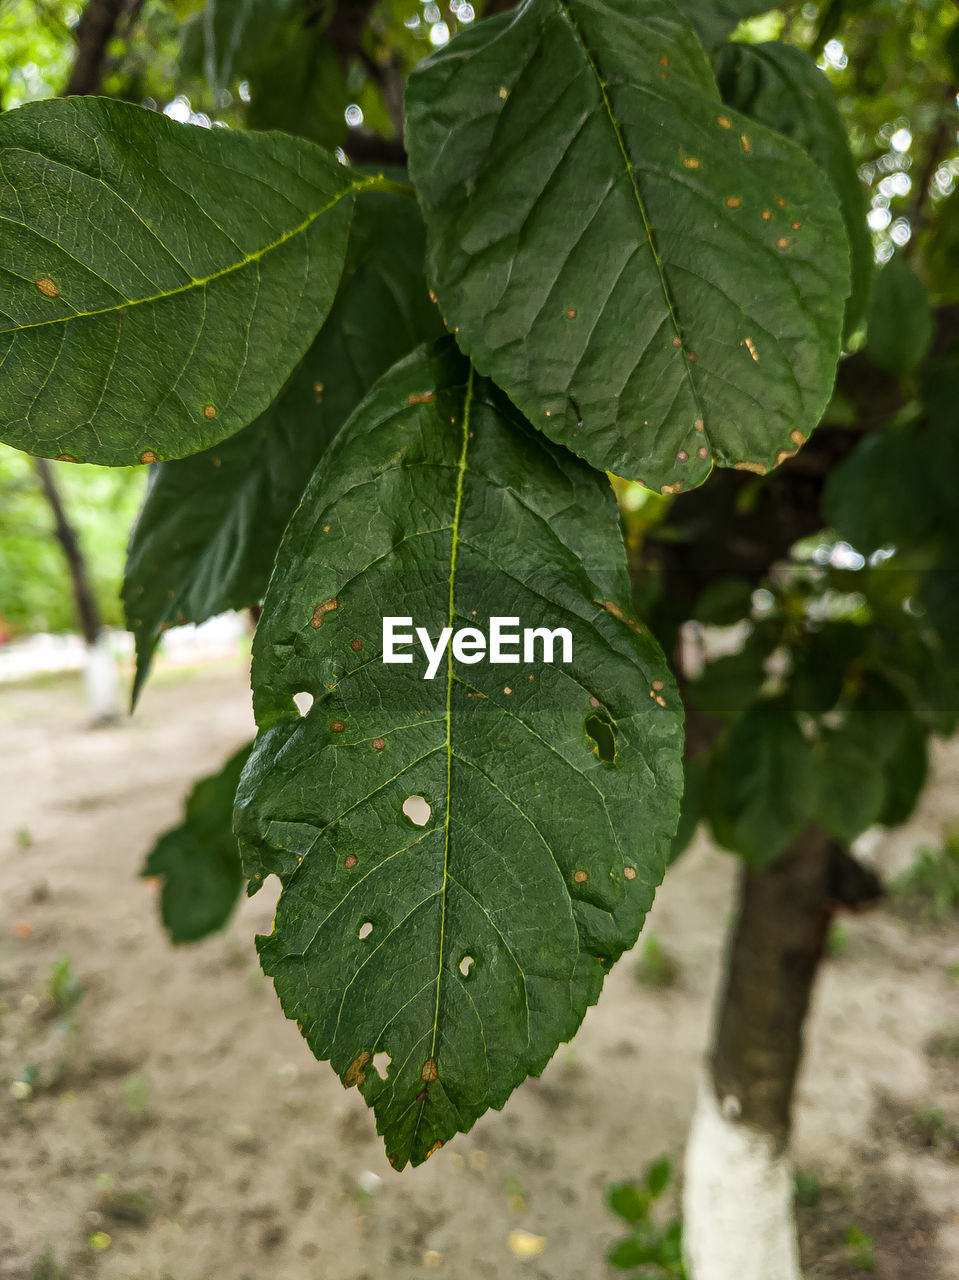 leaf, plant part, green color, plant, close-up, focus on foreground, nature, growth, leaf vein, beauty in nature, day, outdoors, no people, water, drop, high angle view, sunlight, wet, freshness, leaves